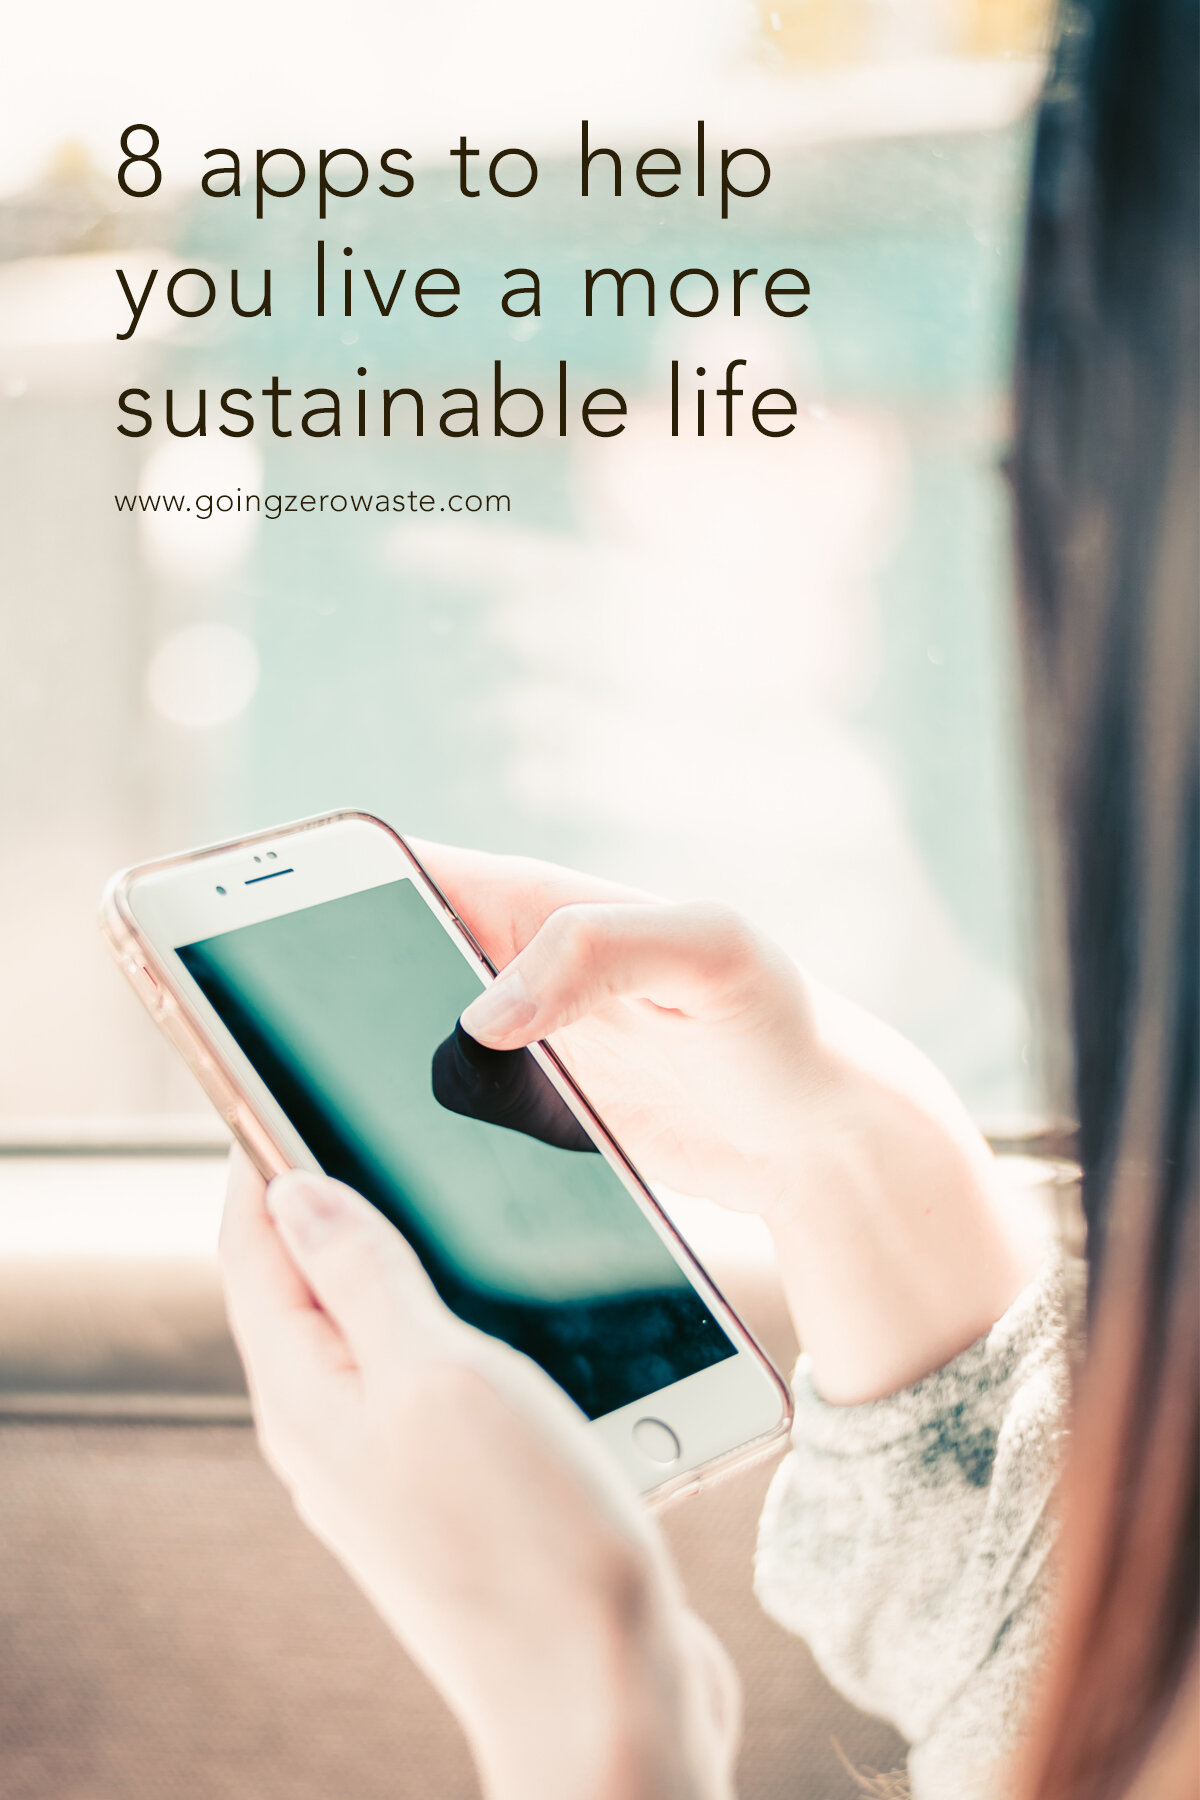 8 Apps to Help you live a more sustainable life from www.goingzerowaste.com #apps #sustainable #zerowaste #ecofriendly #gogreen #tech #eco